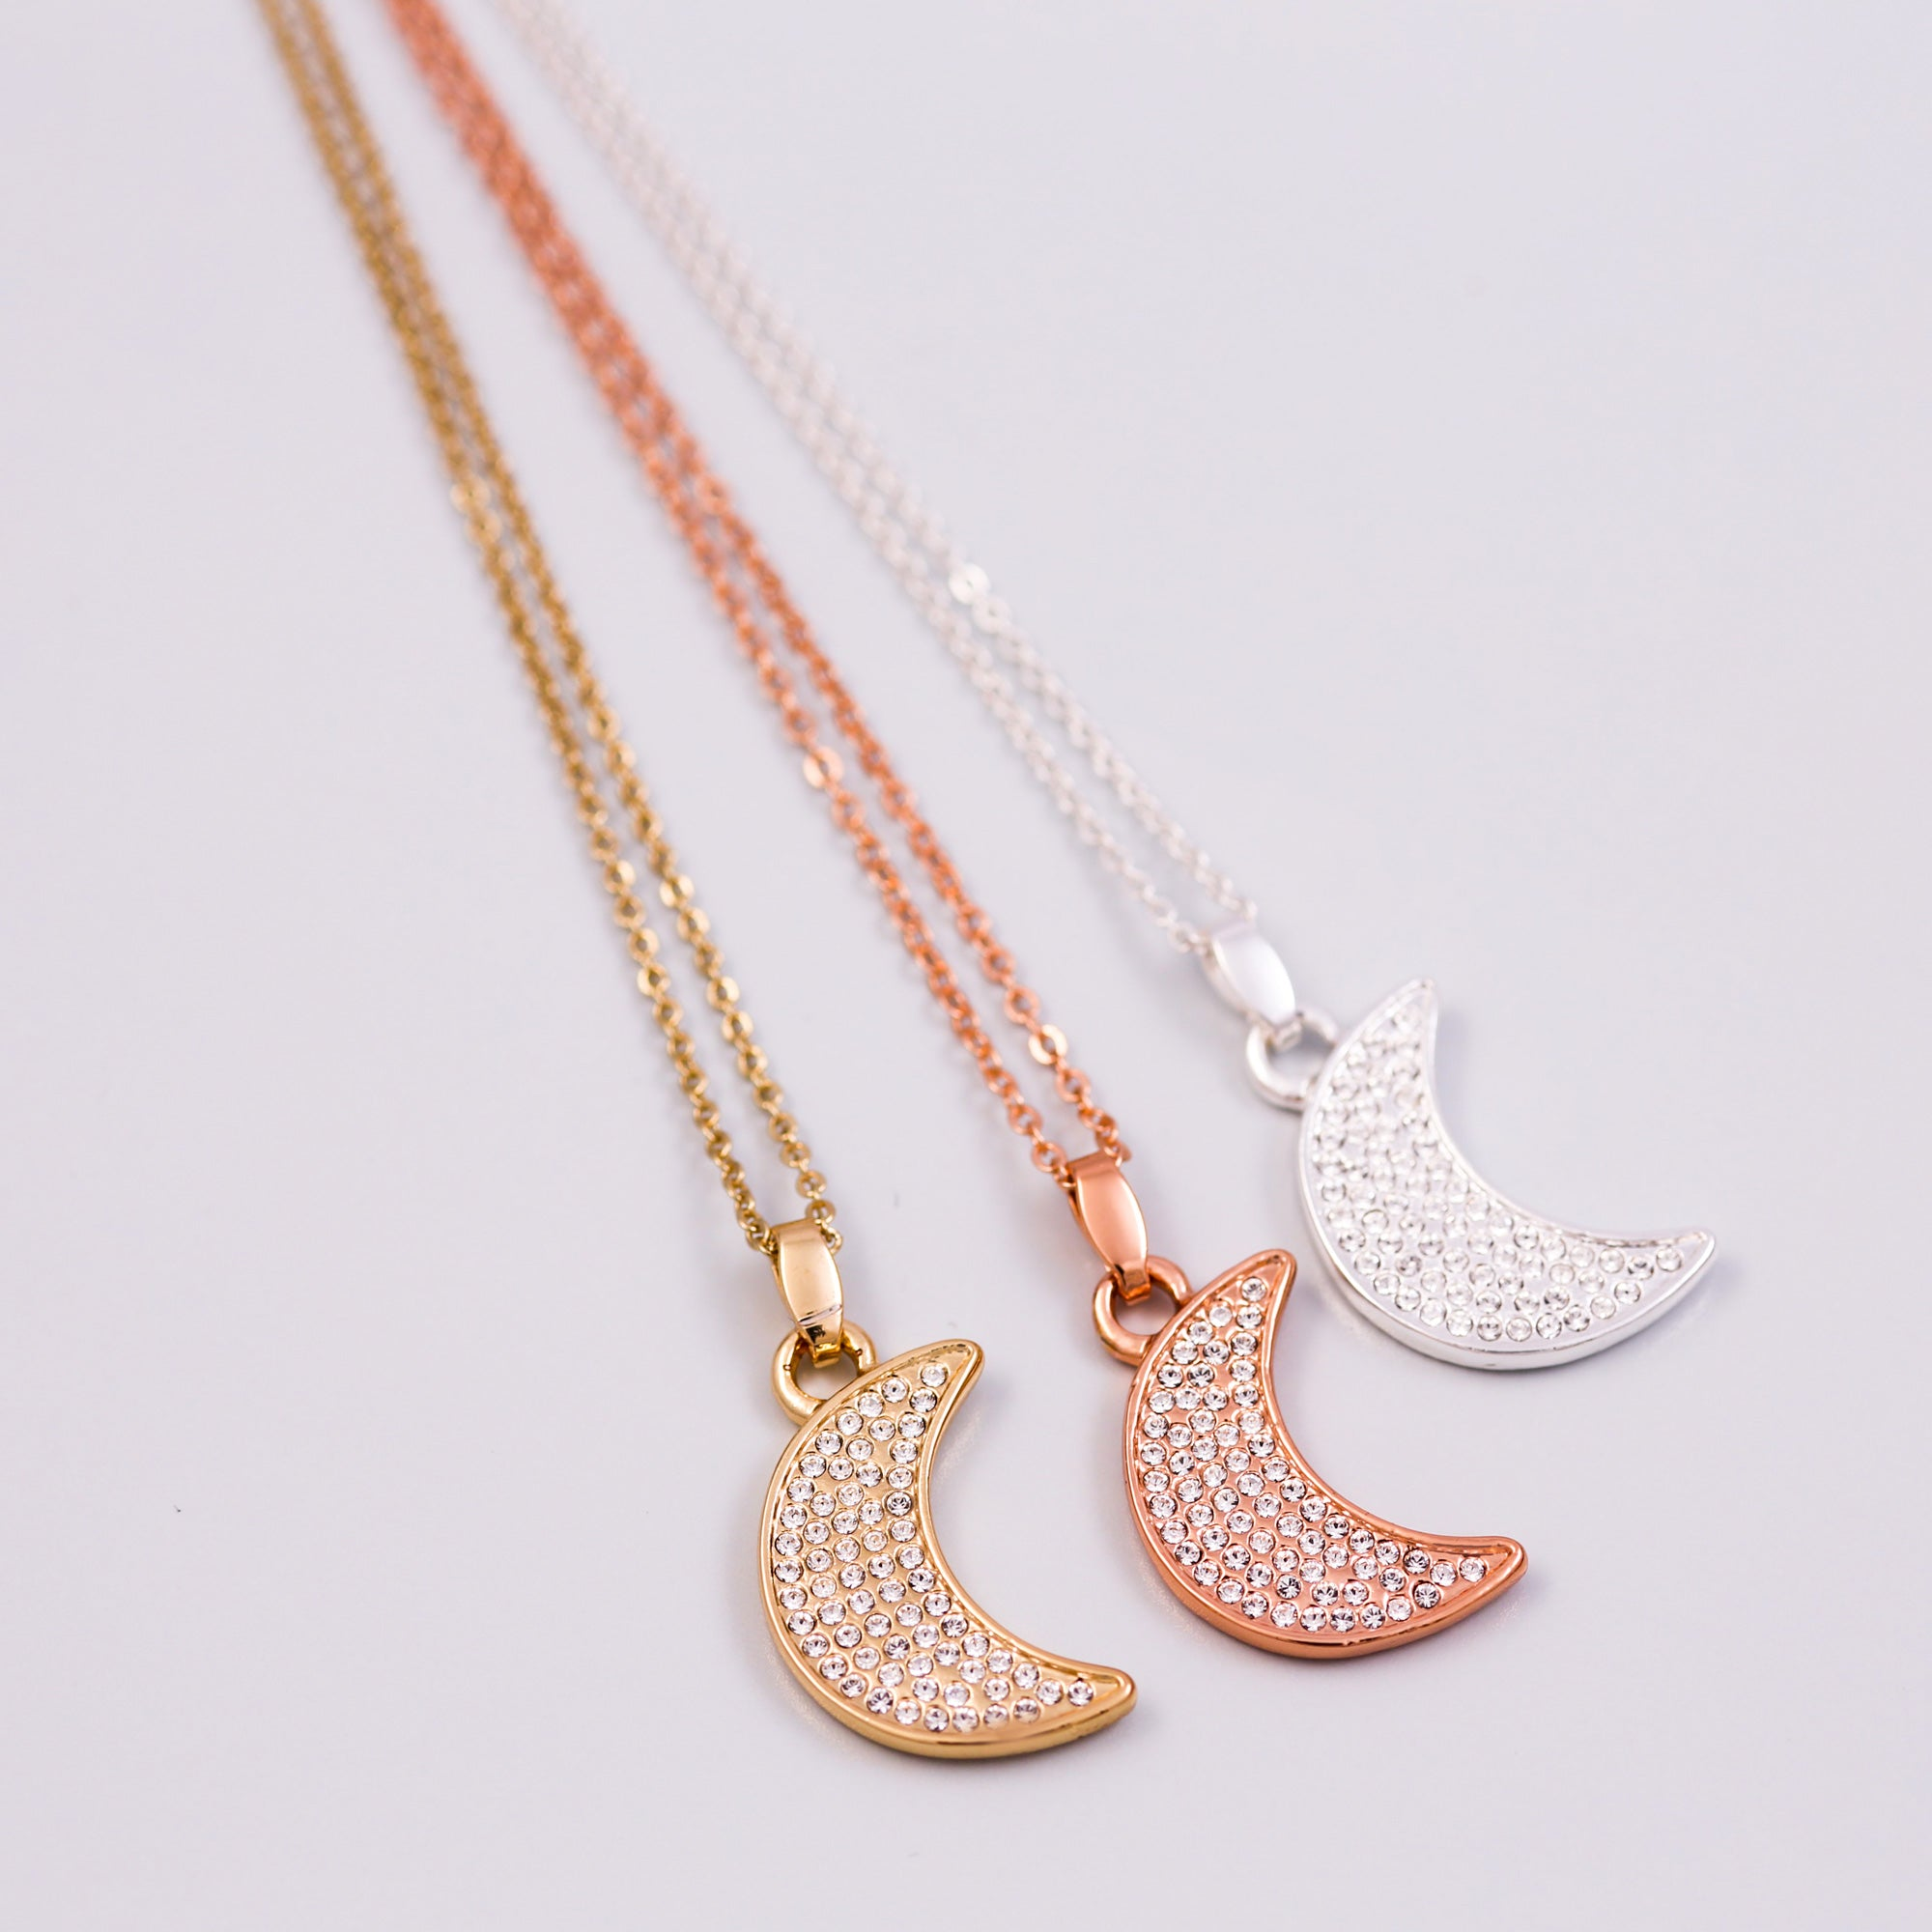 moon chain diamond necklacesun sun wishes moongold filled opal pendant necklace pin gold